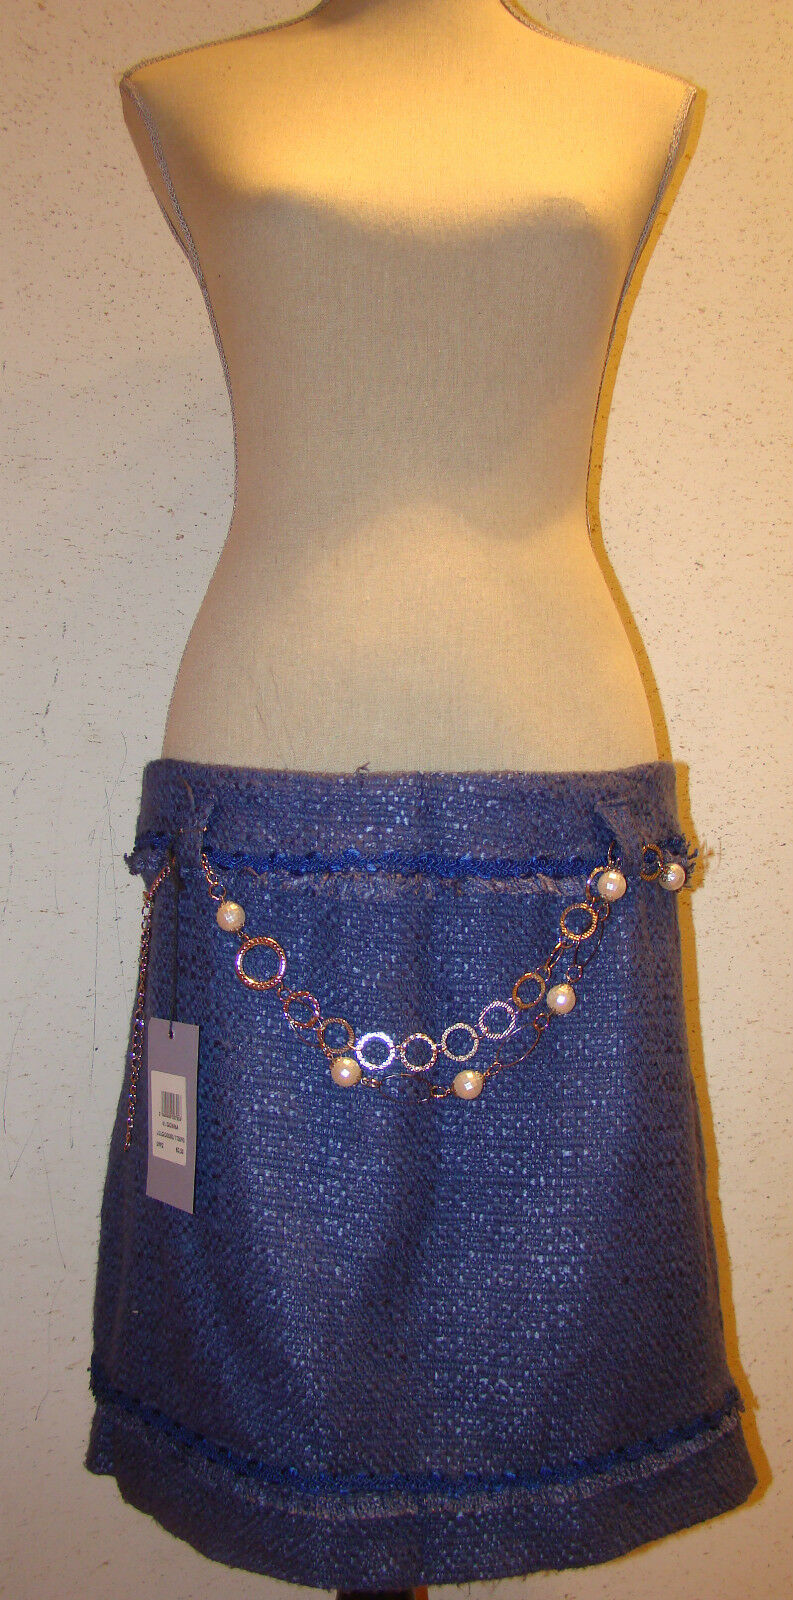 WOMEN'S SKIRT NEW WITH TAGS MADE IN ITALY